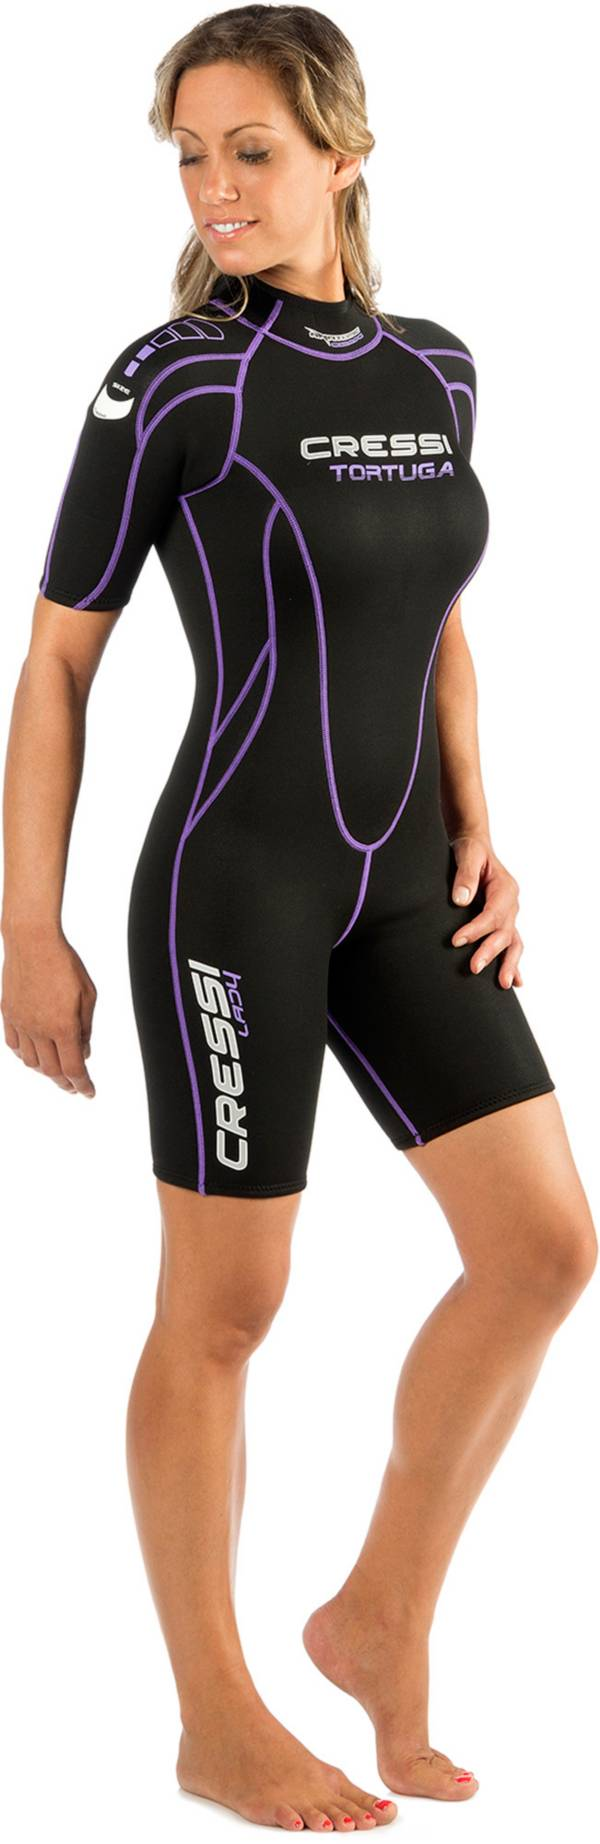 Cressi Adult Tortuga Wetsuit product image